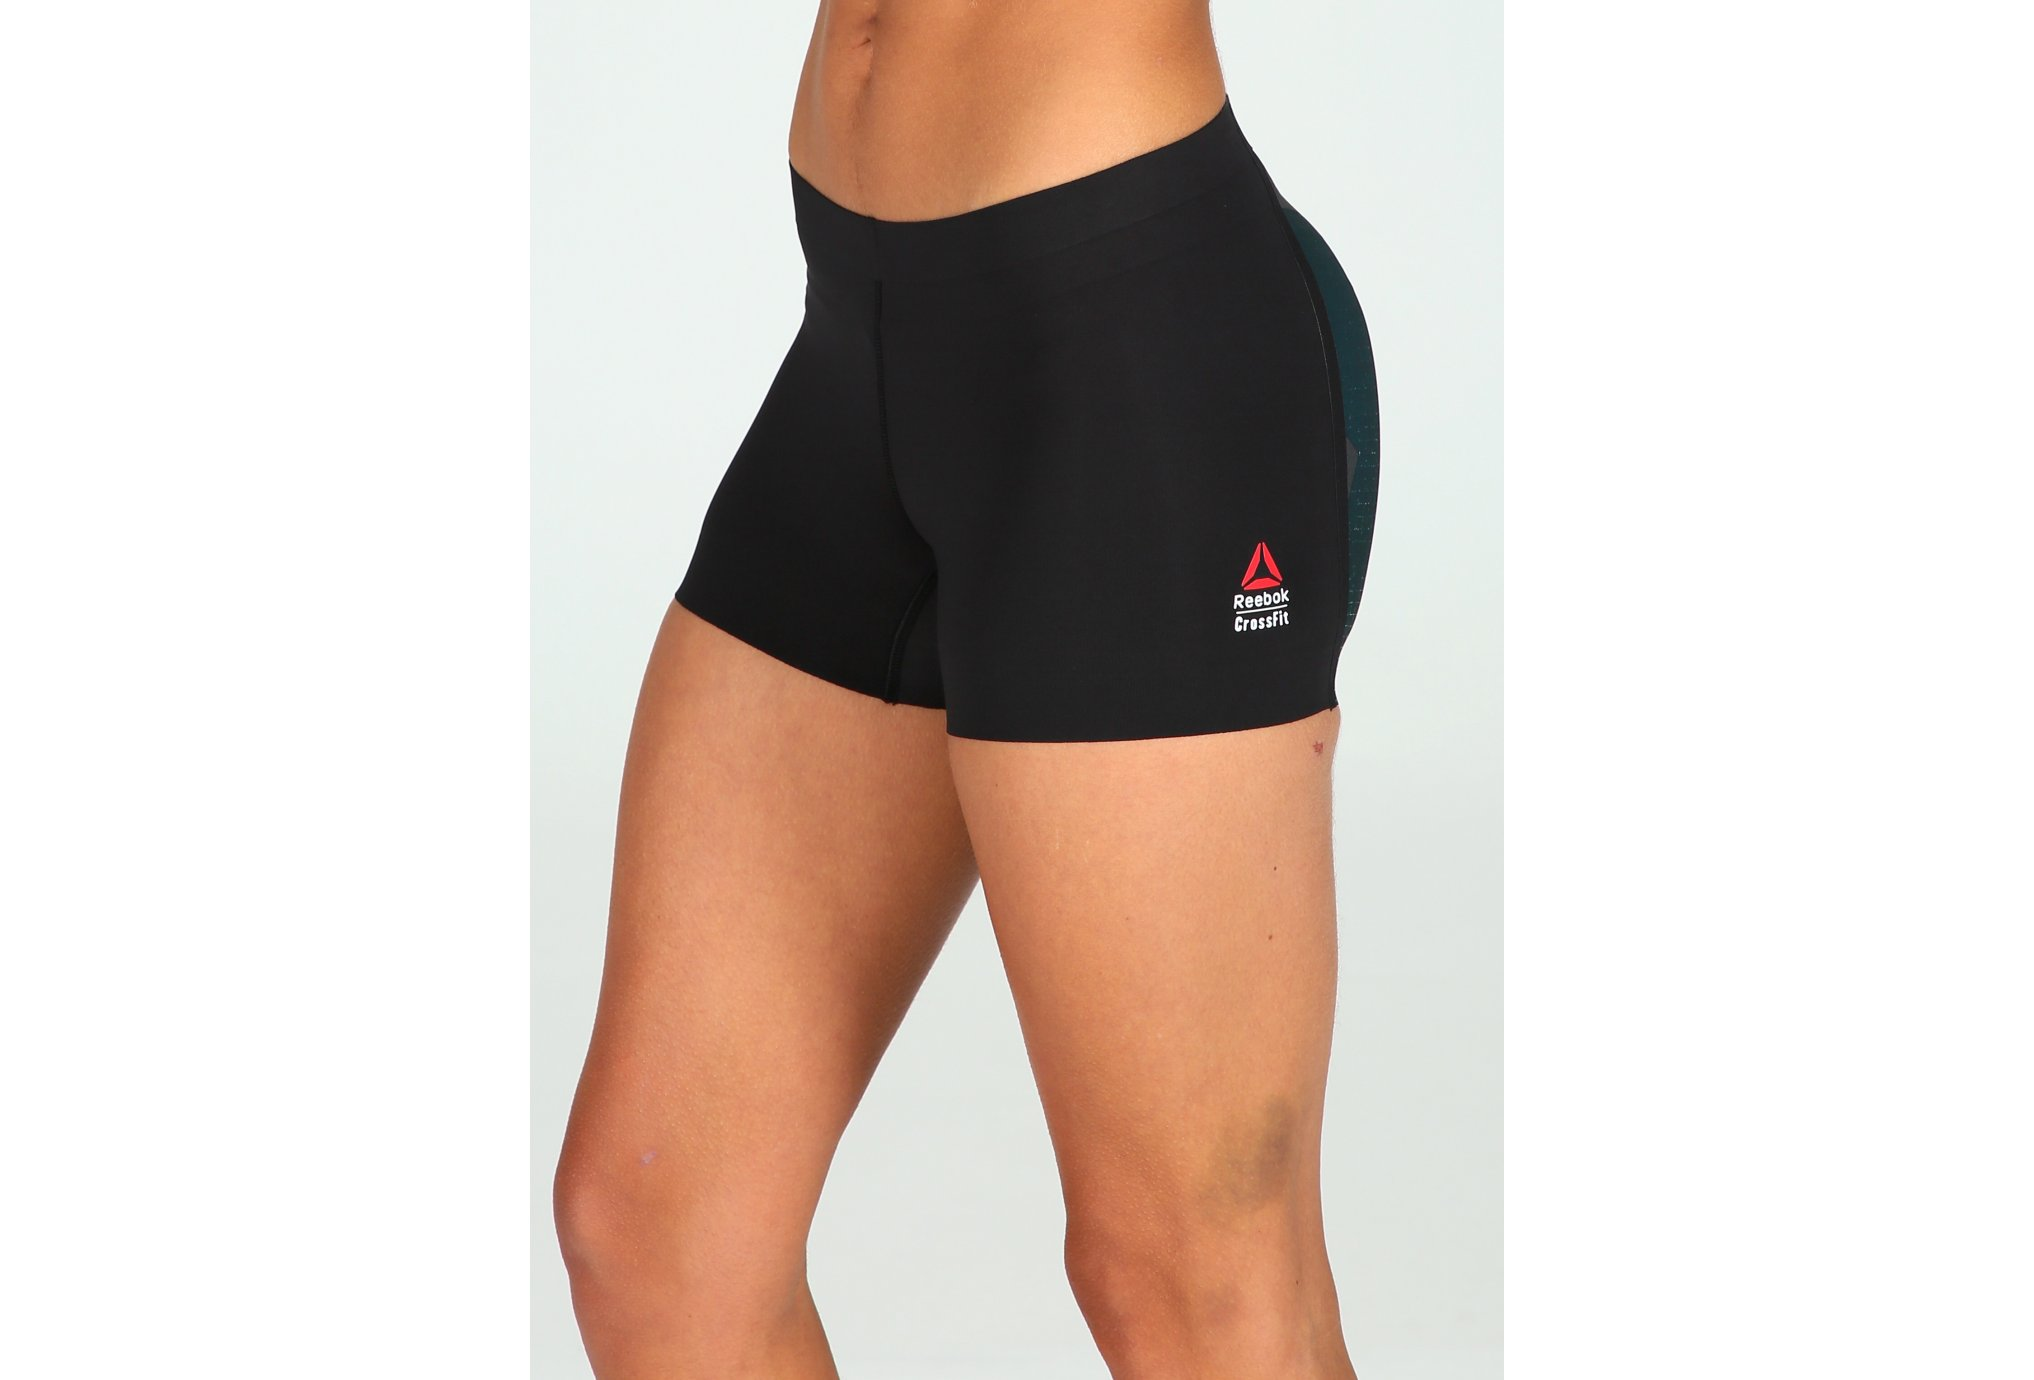 Reebok Short de compression Crossfit W vêtement running femme